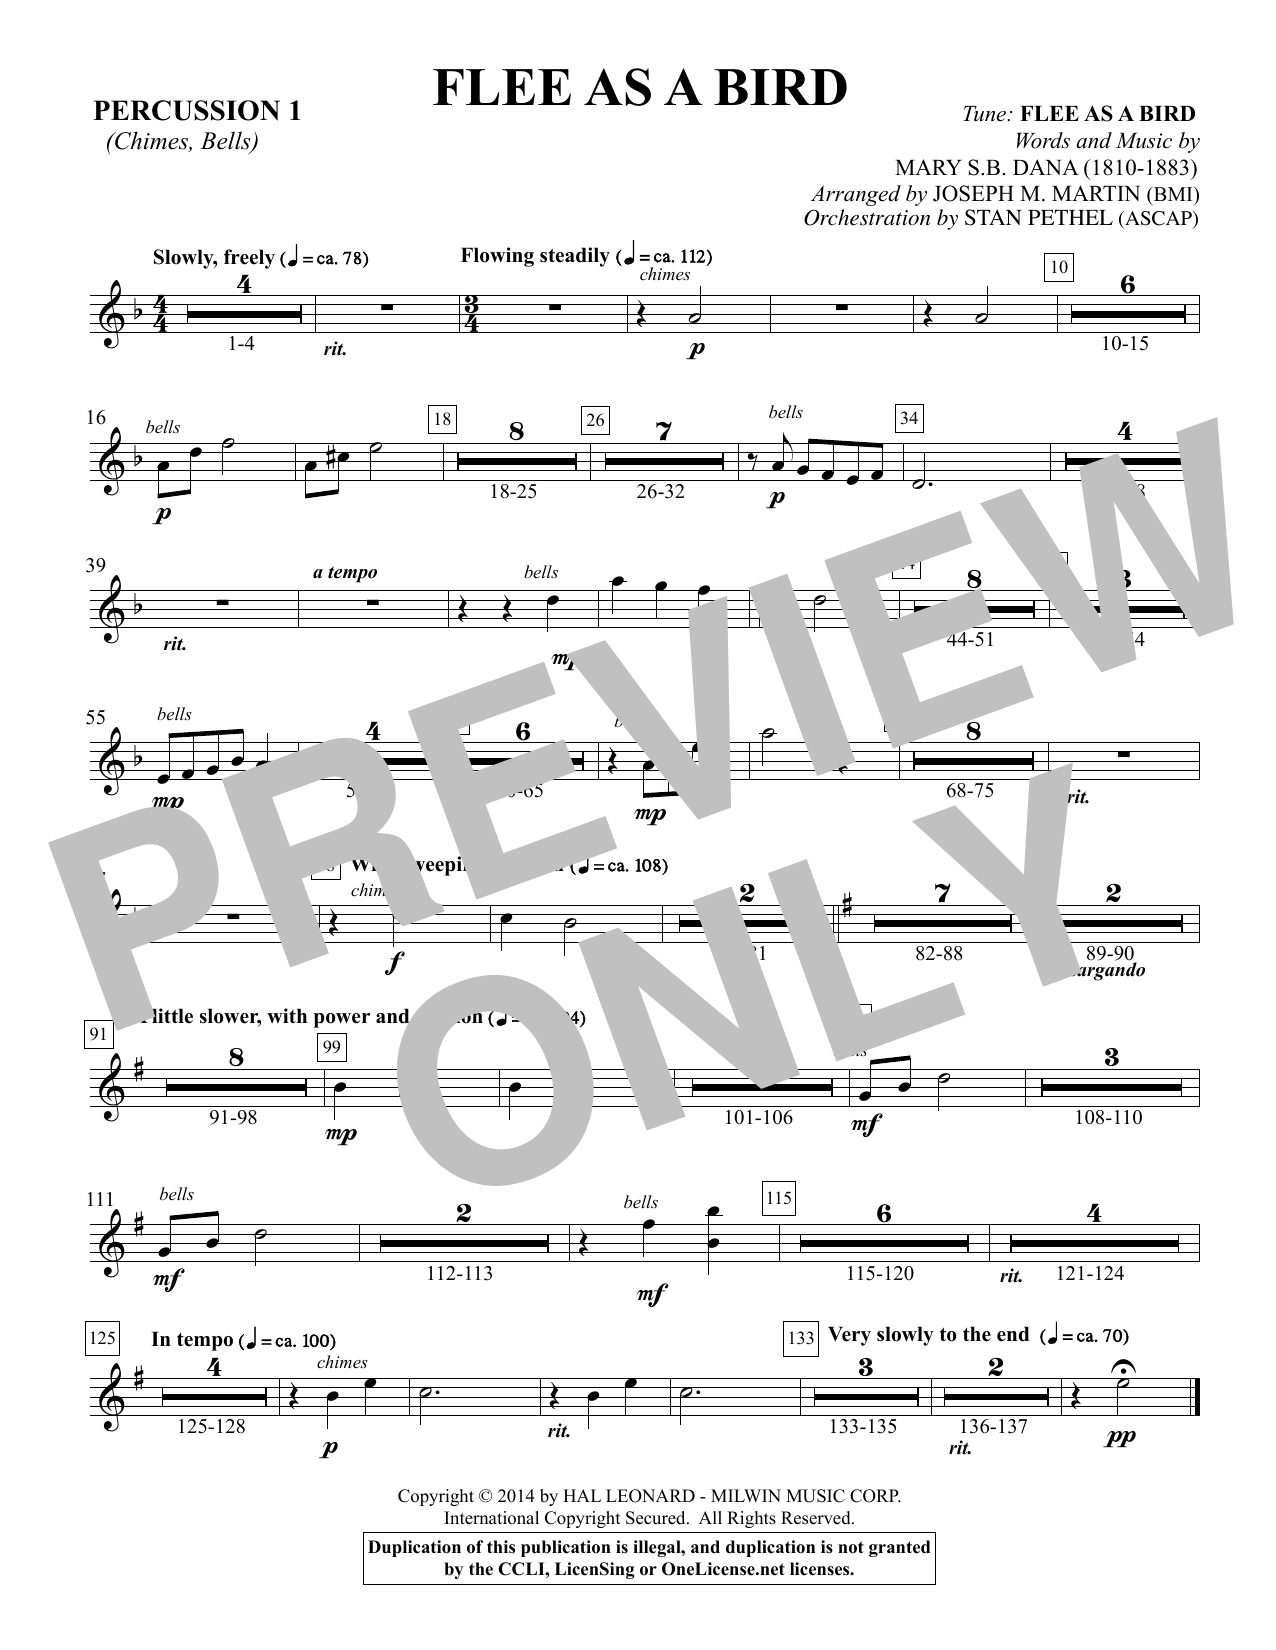 Flee As a Bird - Percussion 1 Sheet Music